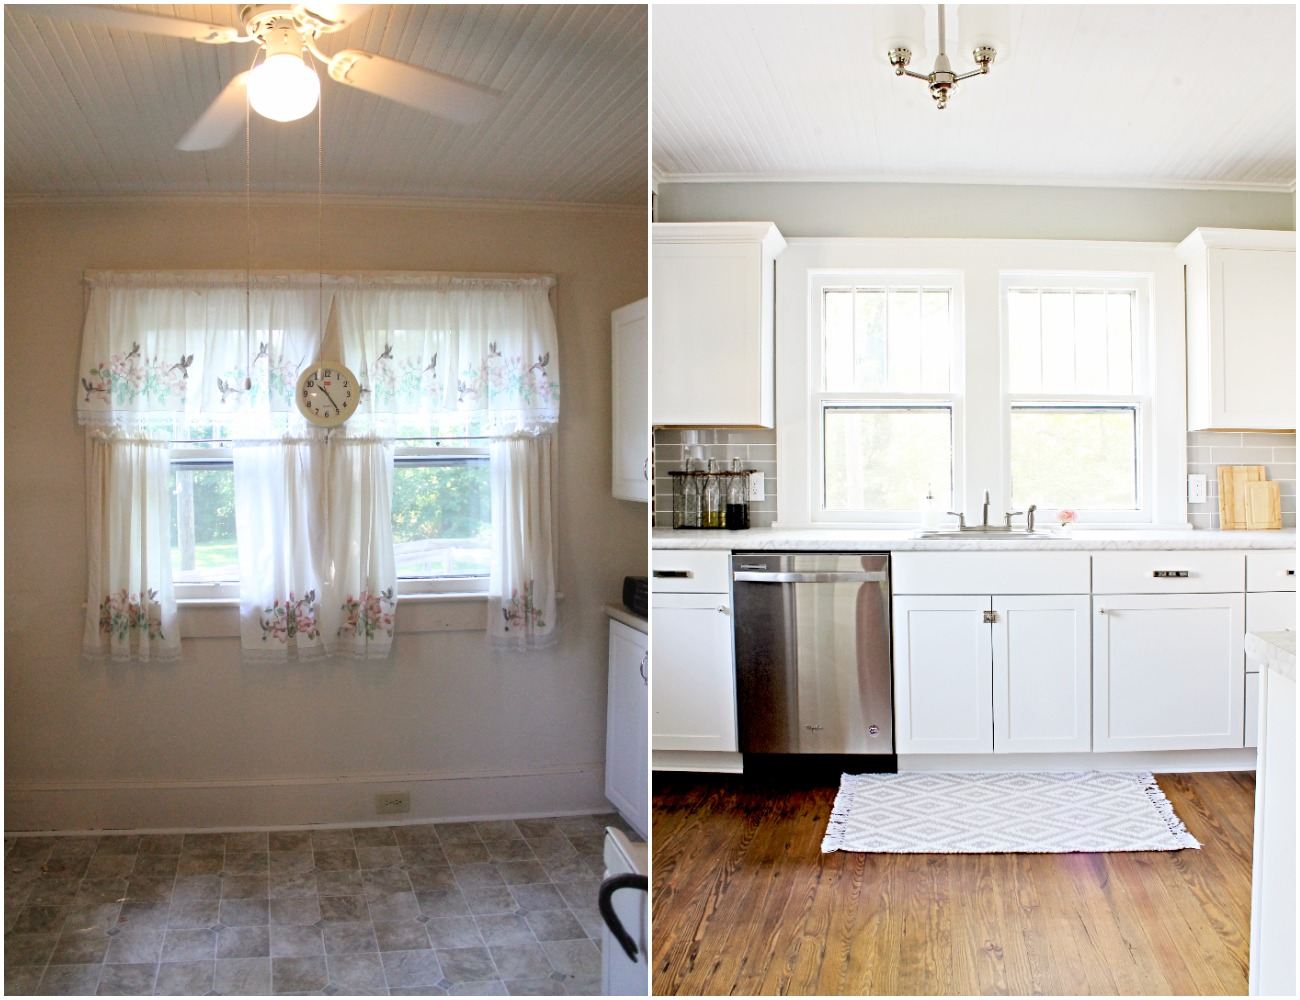 House Flipping Before and Afters - DIY BUDGET KITCHEN IDEAS WHITE SHAKER CABINETS (6).jpg